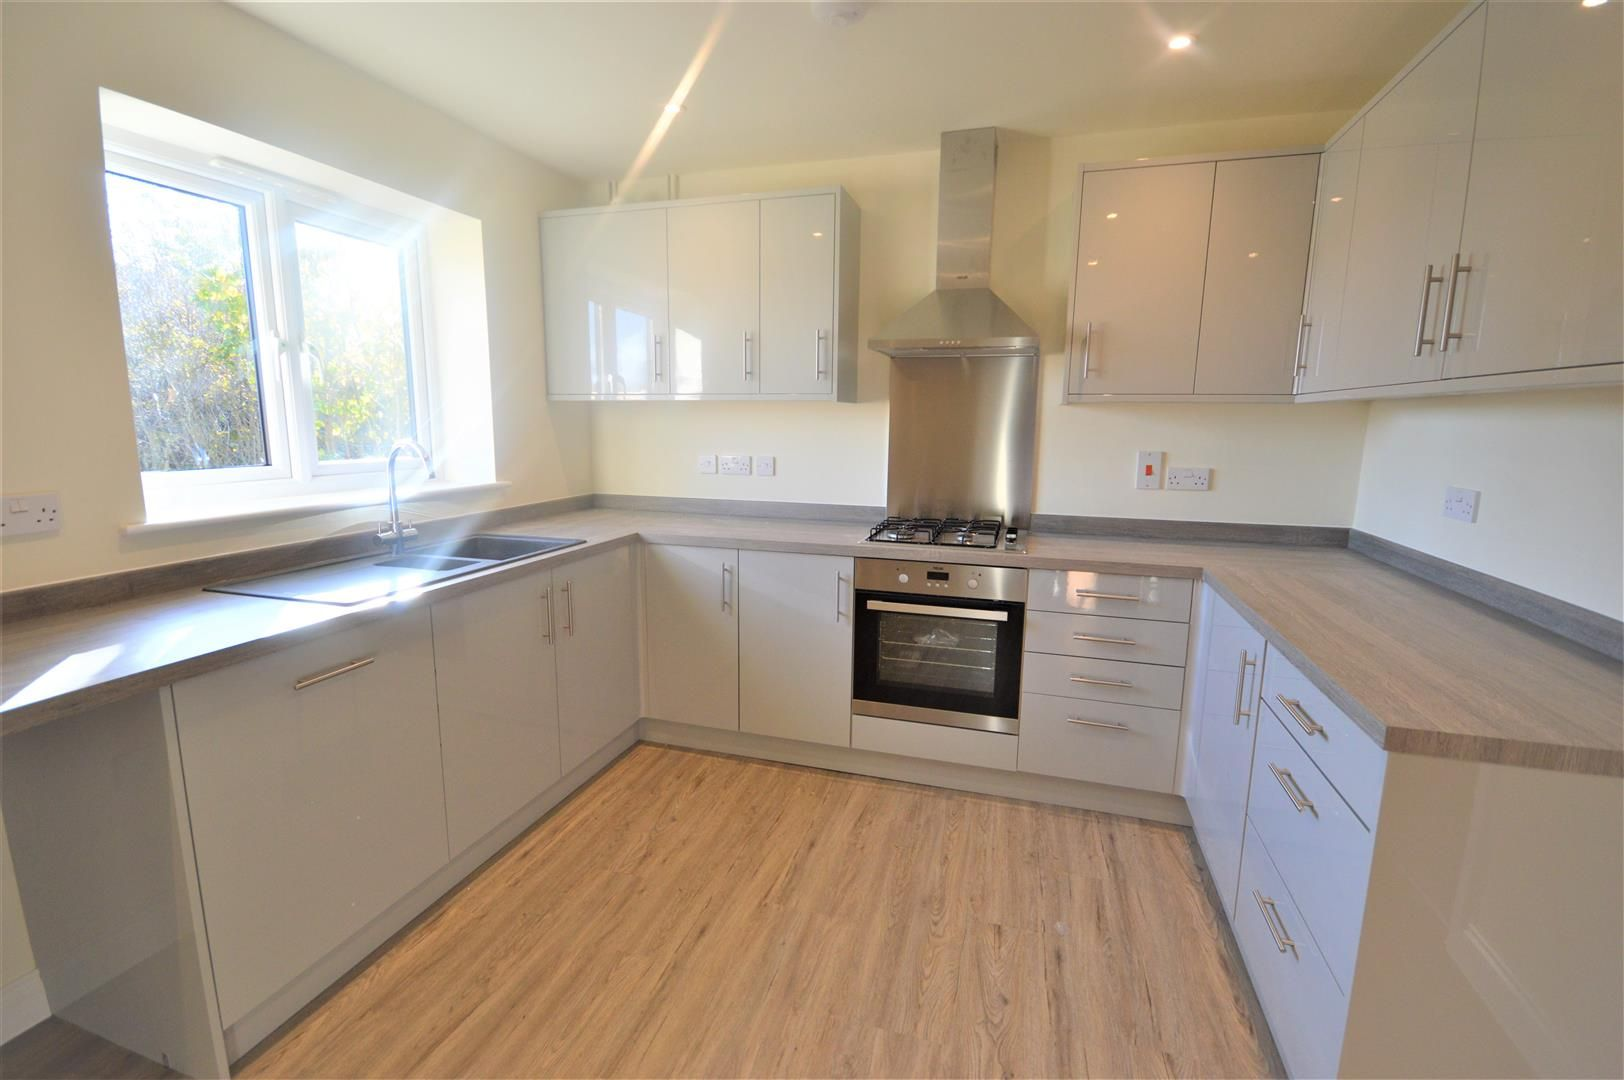 3 bed semi-detached for sale in Kingsland 4